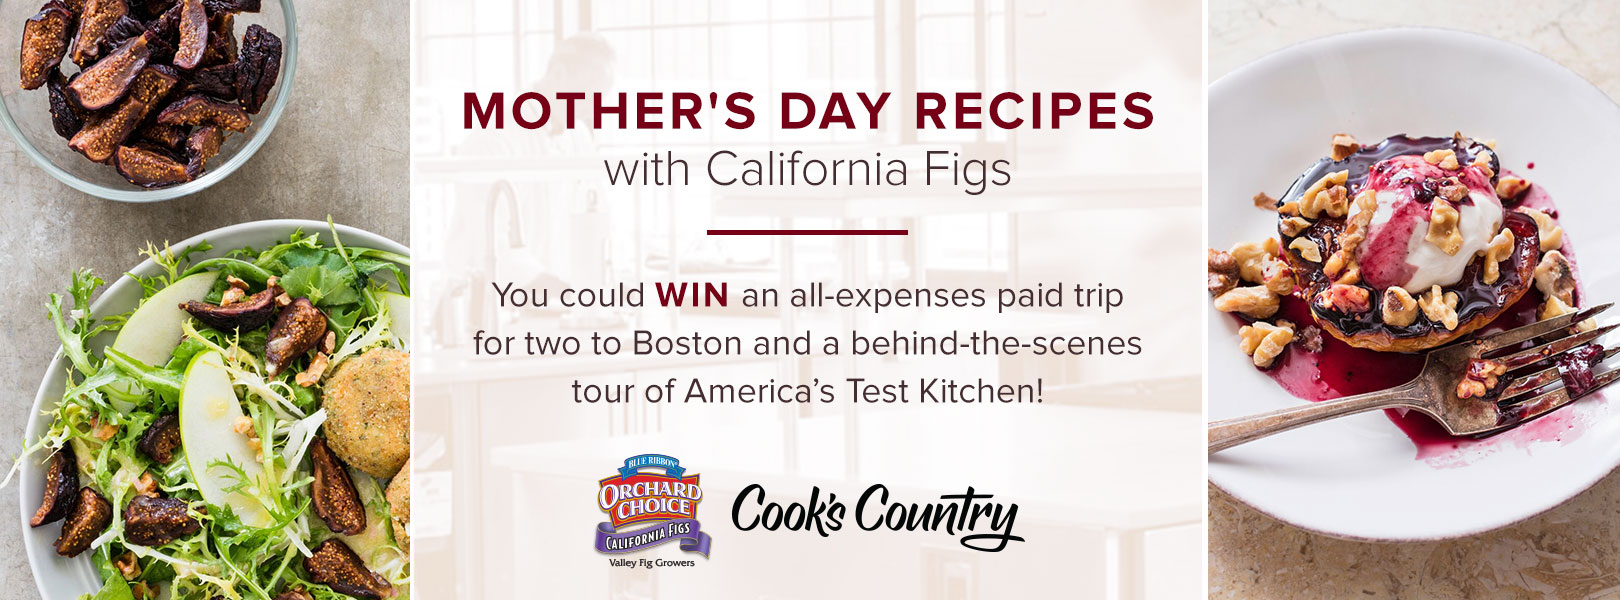 Mother S Day Recipes With California Figs Sweepstakes